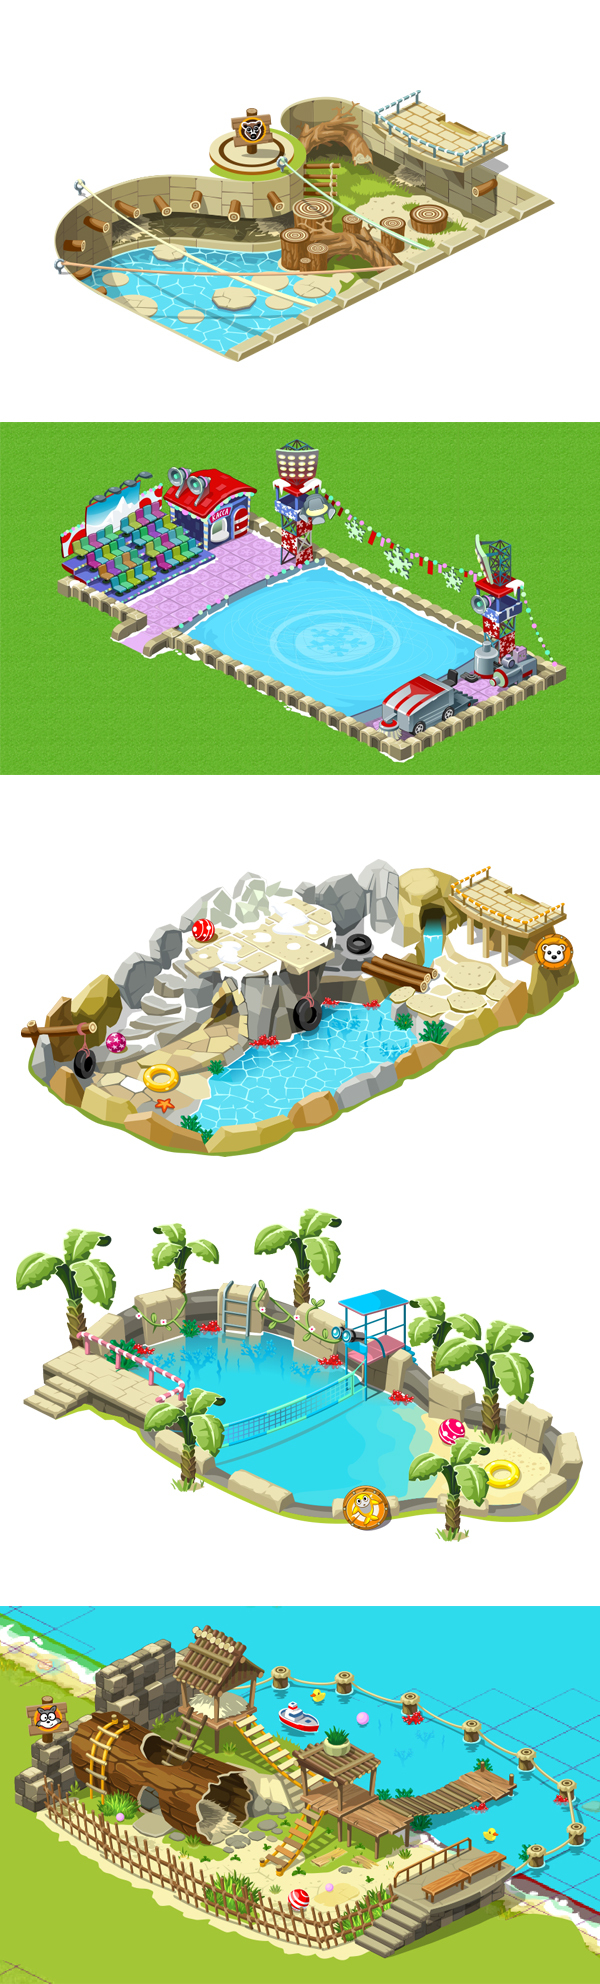 Homes for animals on Behance